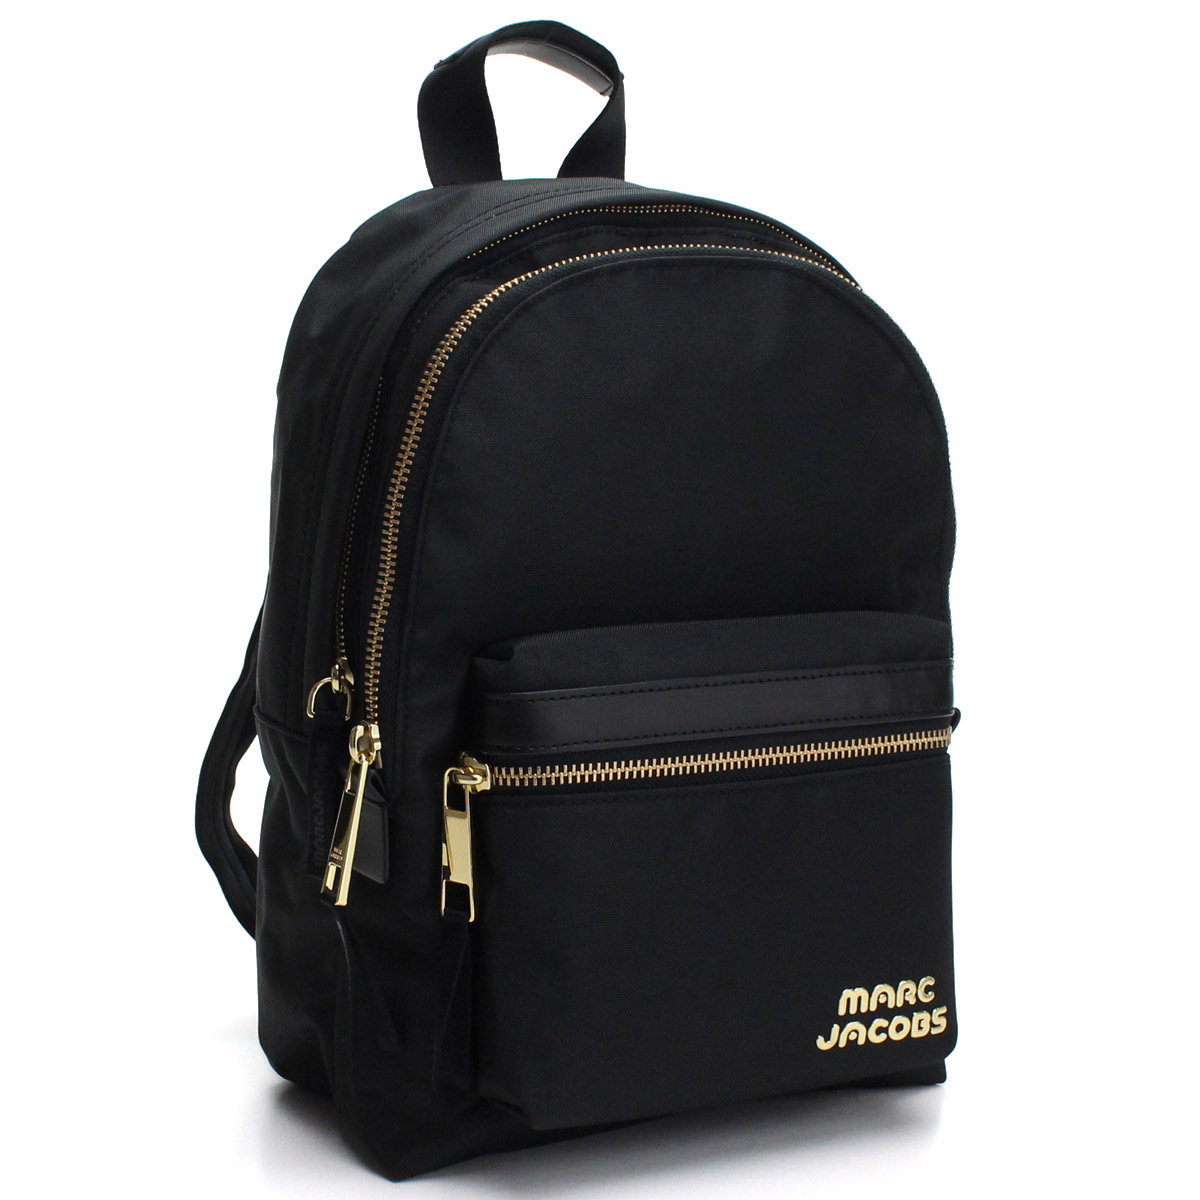 ab5e1773ab1b Bighit The total brand wholesale  Mark Jacobs MARC JACOBS TREK PACK MEDIUM  BACKPACK medium backpack rucksack M0014031 001 BLACK black